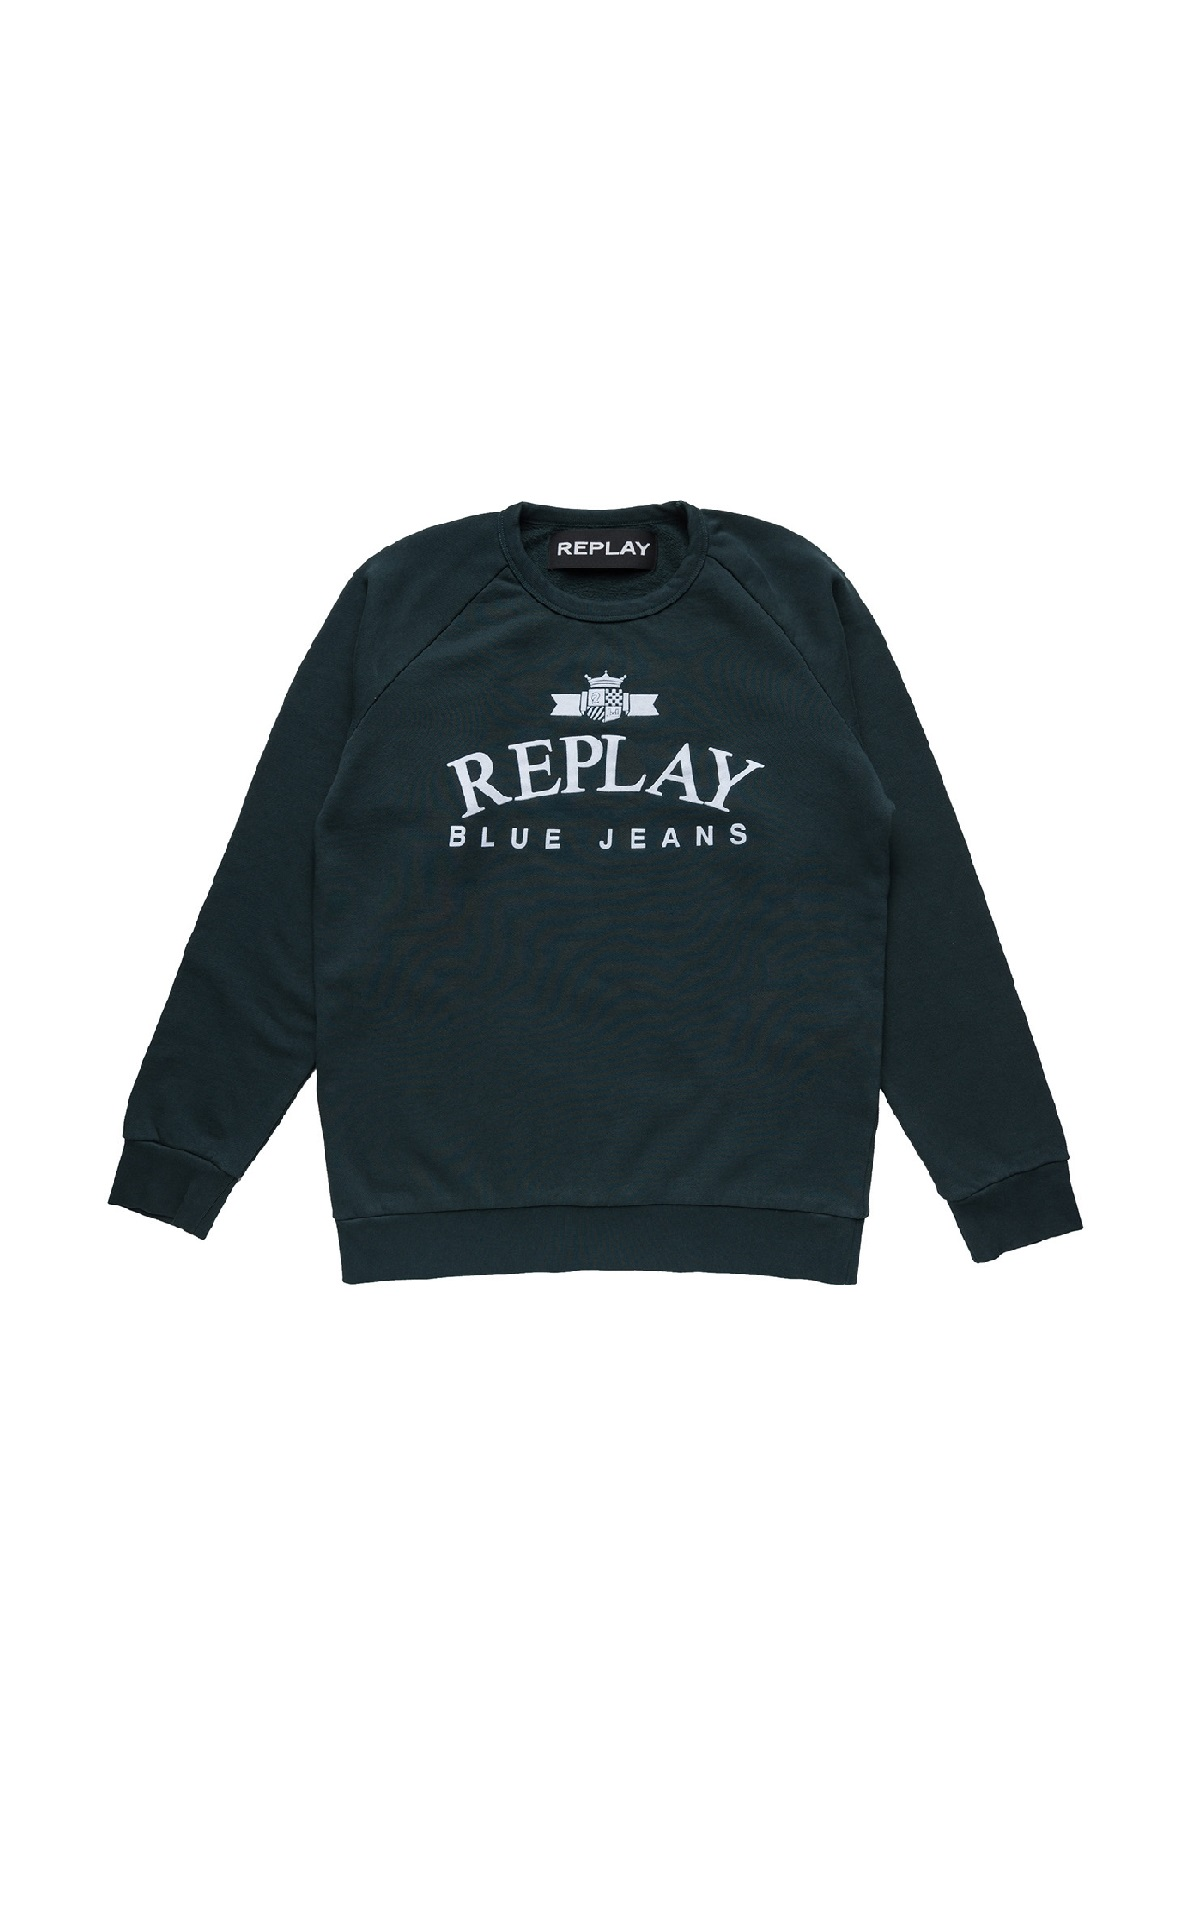 Black sweatshirt with logo Replay